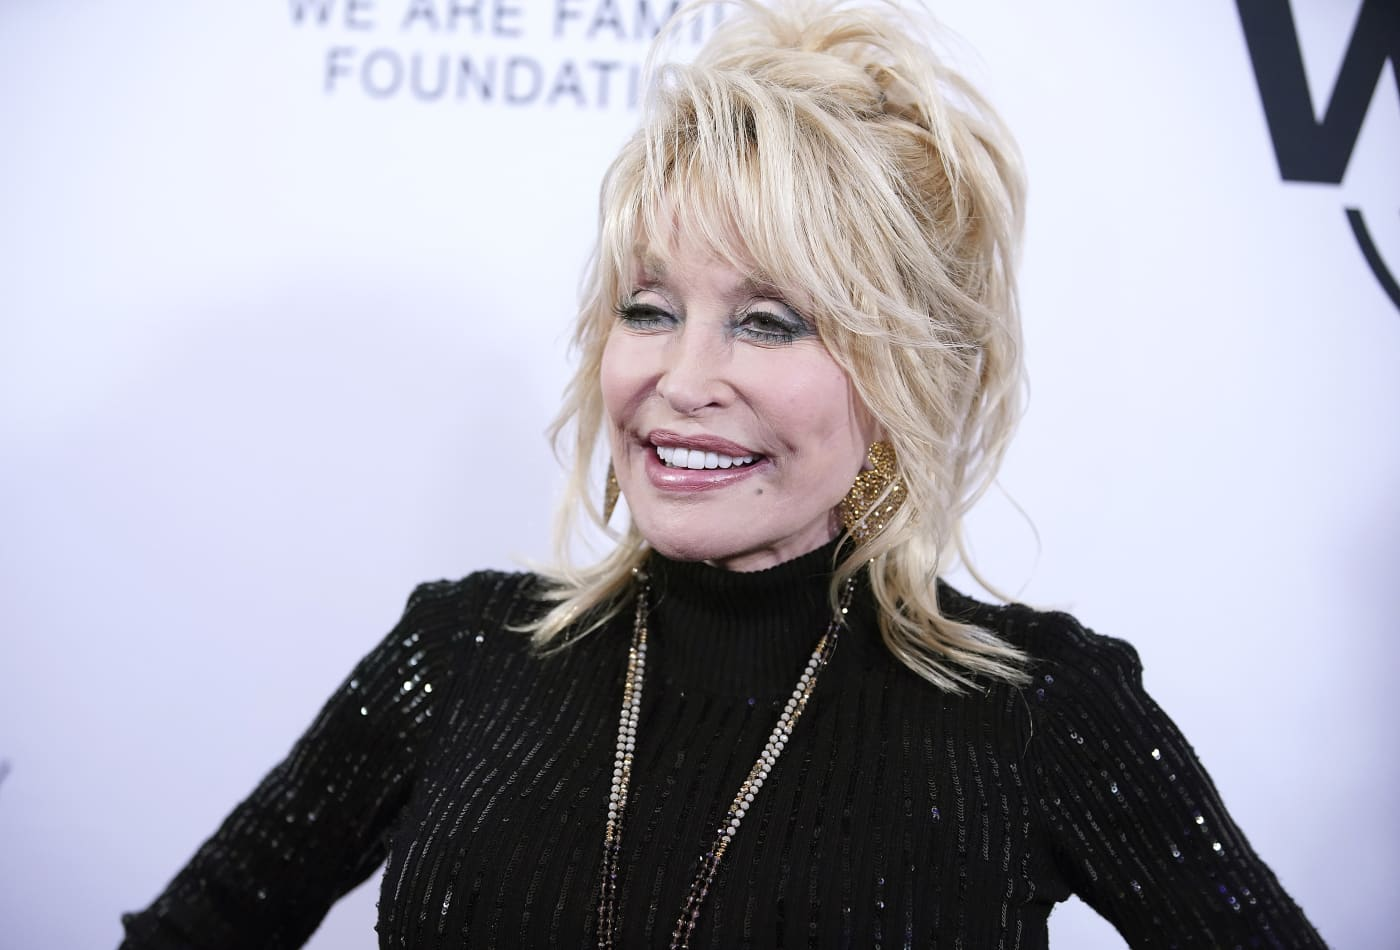 Dolly Parton helped fund the Moderna Covid-19 vaccine that's being called 'a game changer'